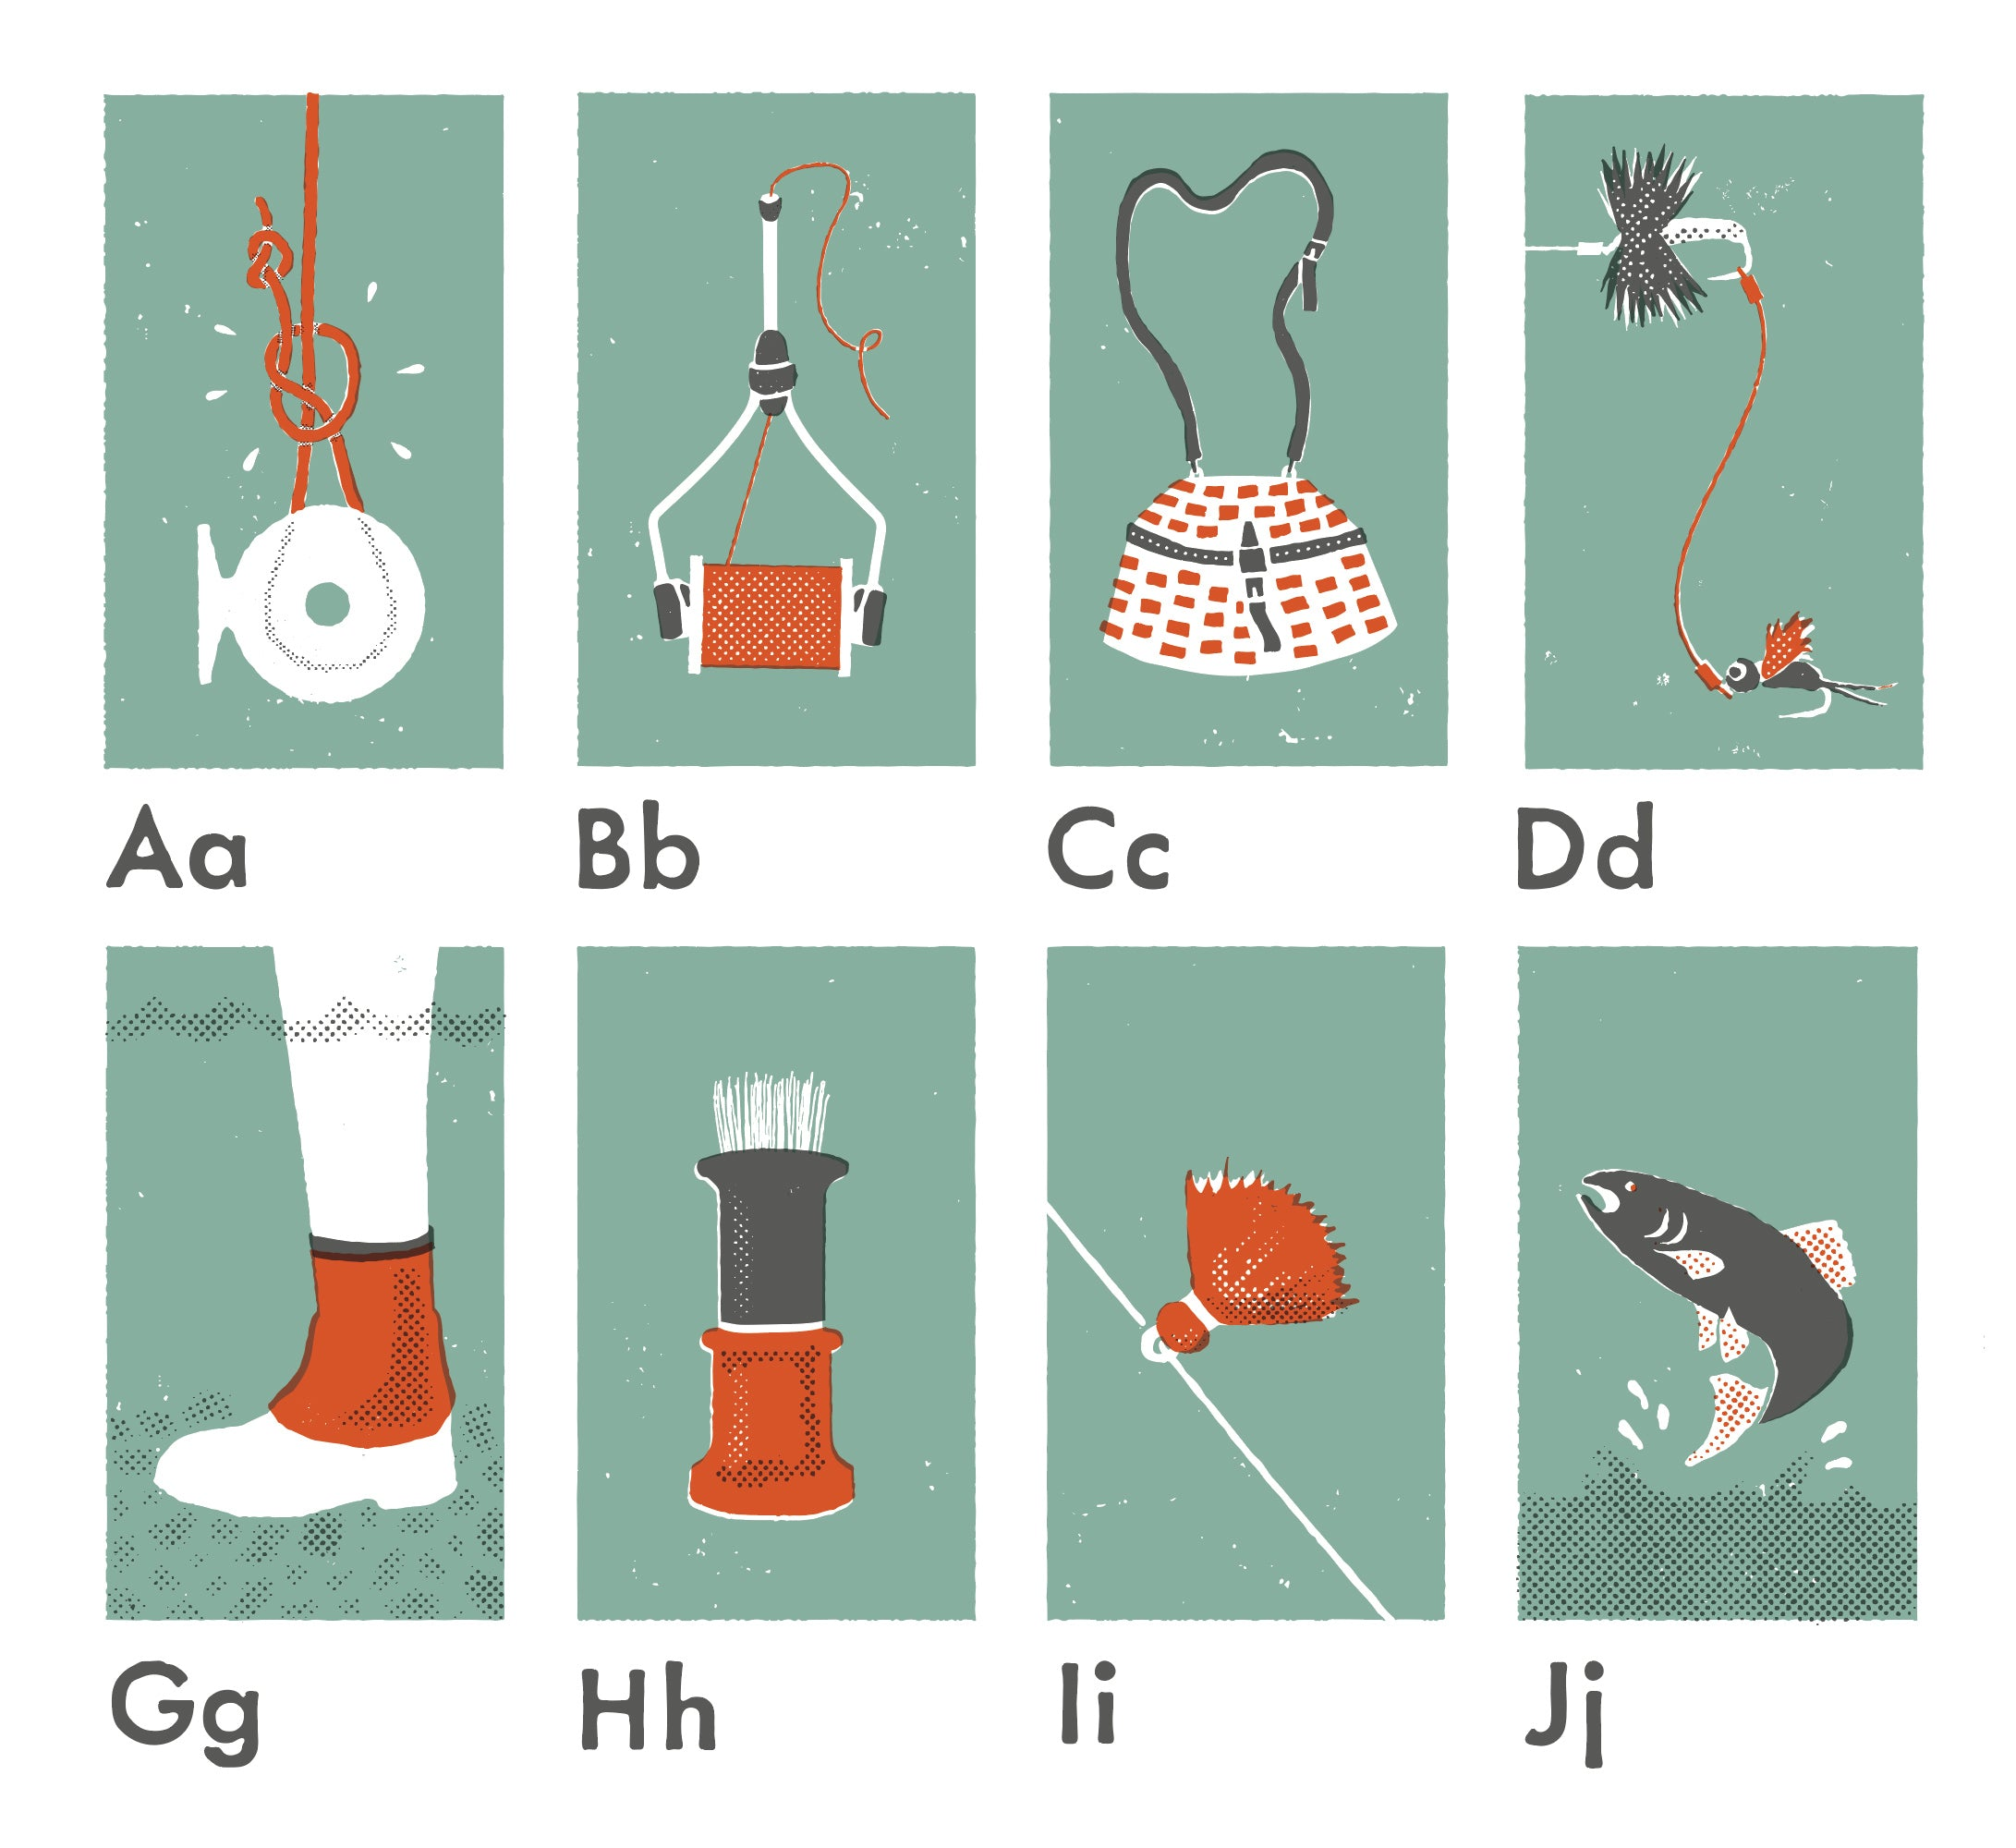 The Fly Fishing Alphabet